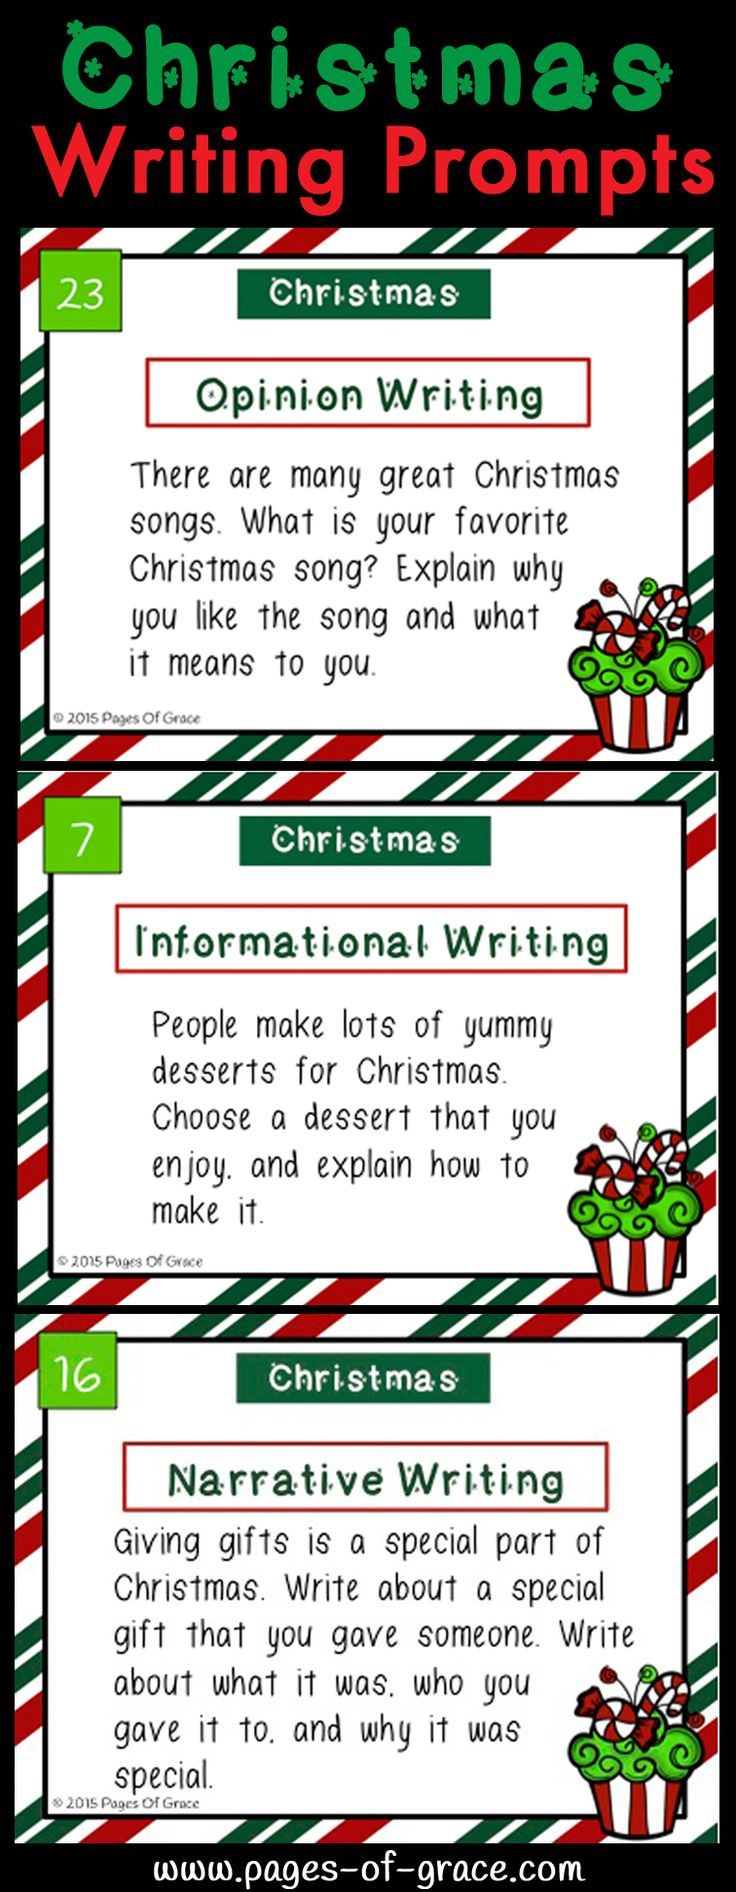 What persuasive essay topic can I write a 7 page paper on using Christmas?